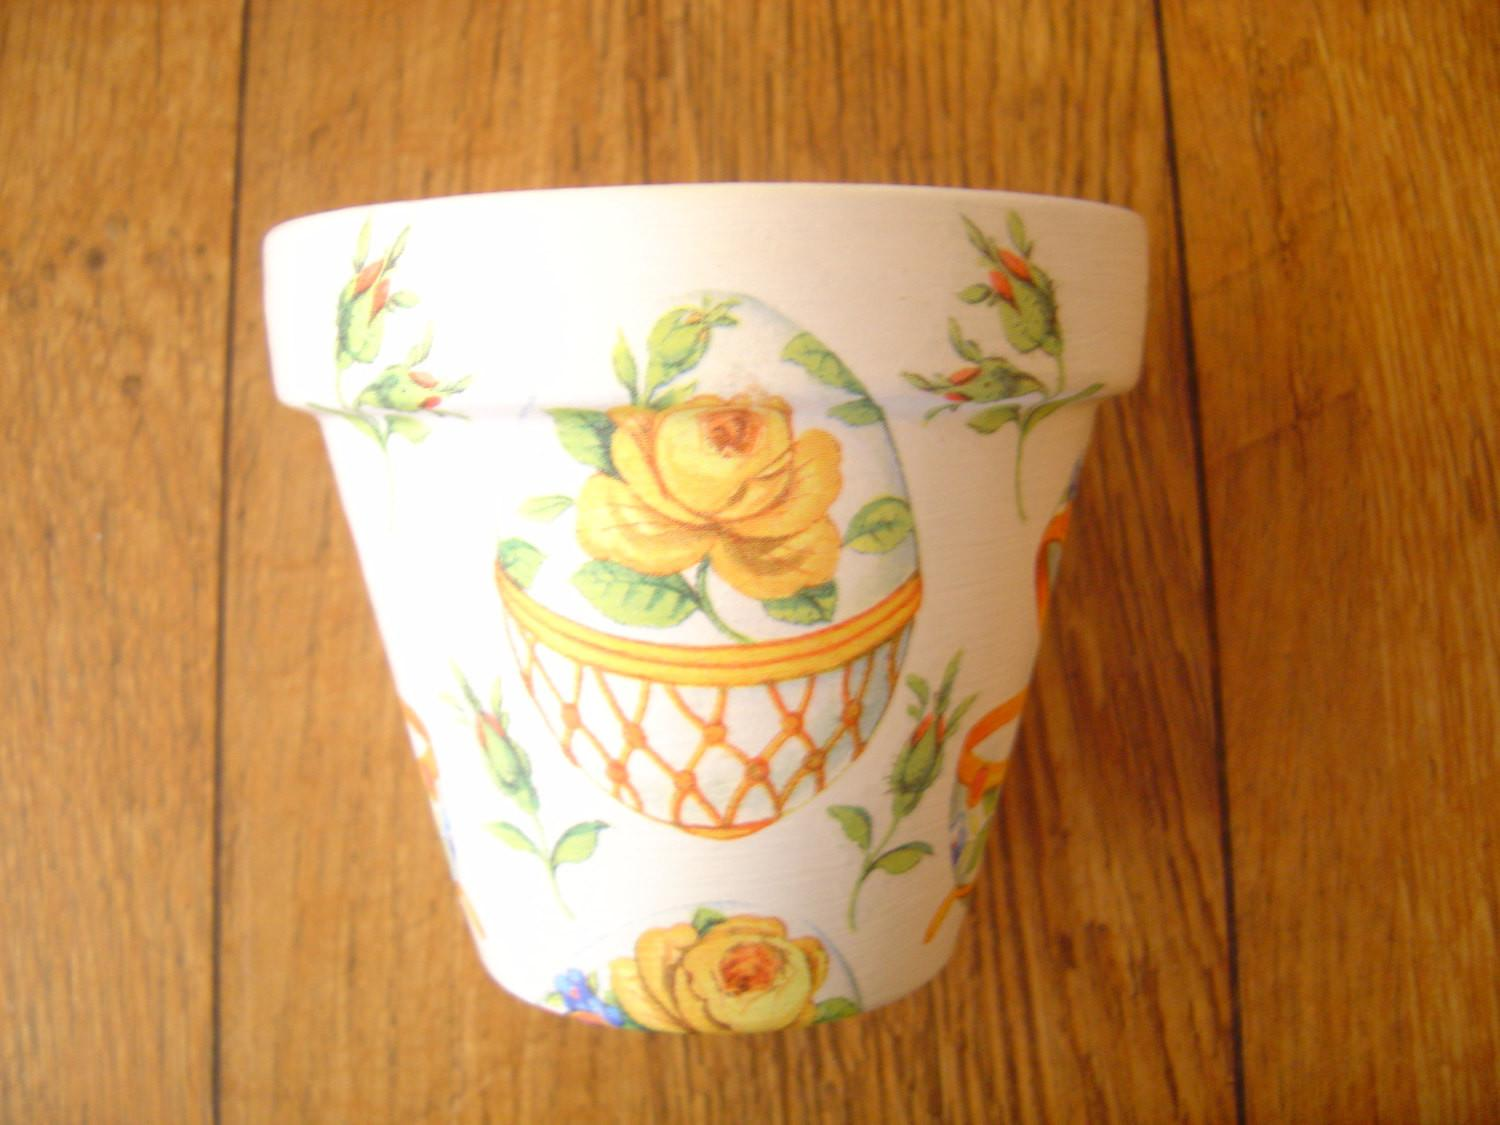 Ooak Hand Painted Decoupaged Decorative Flower